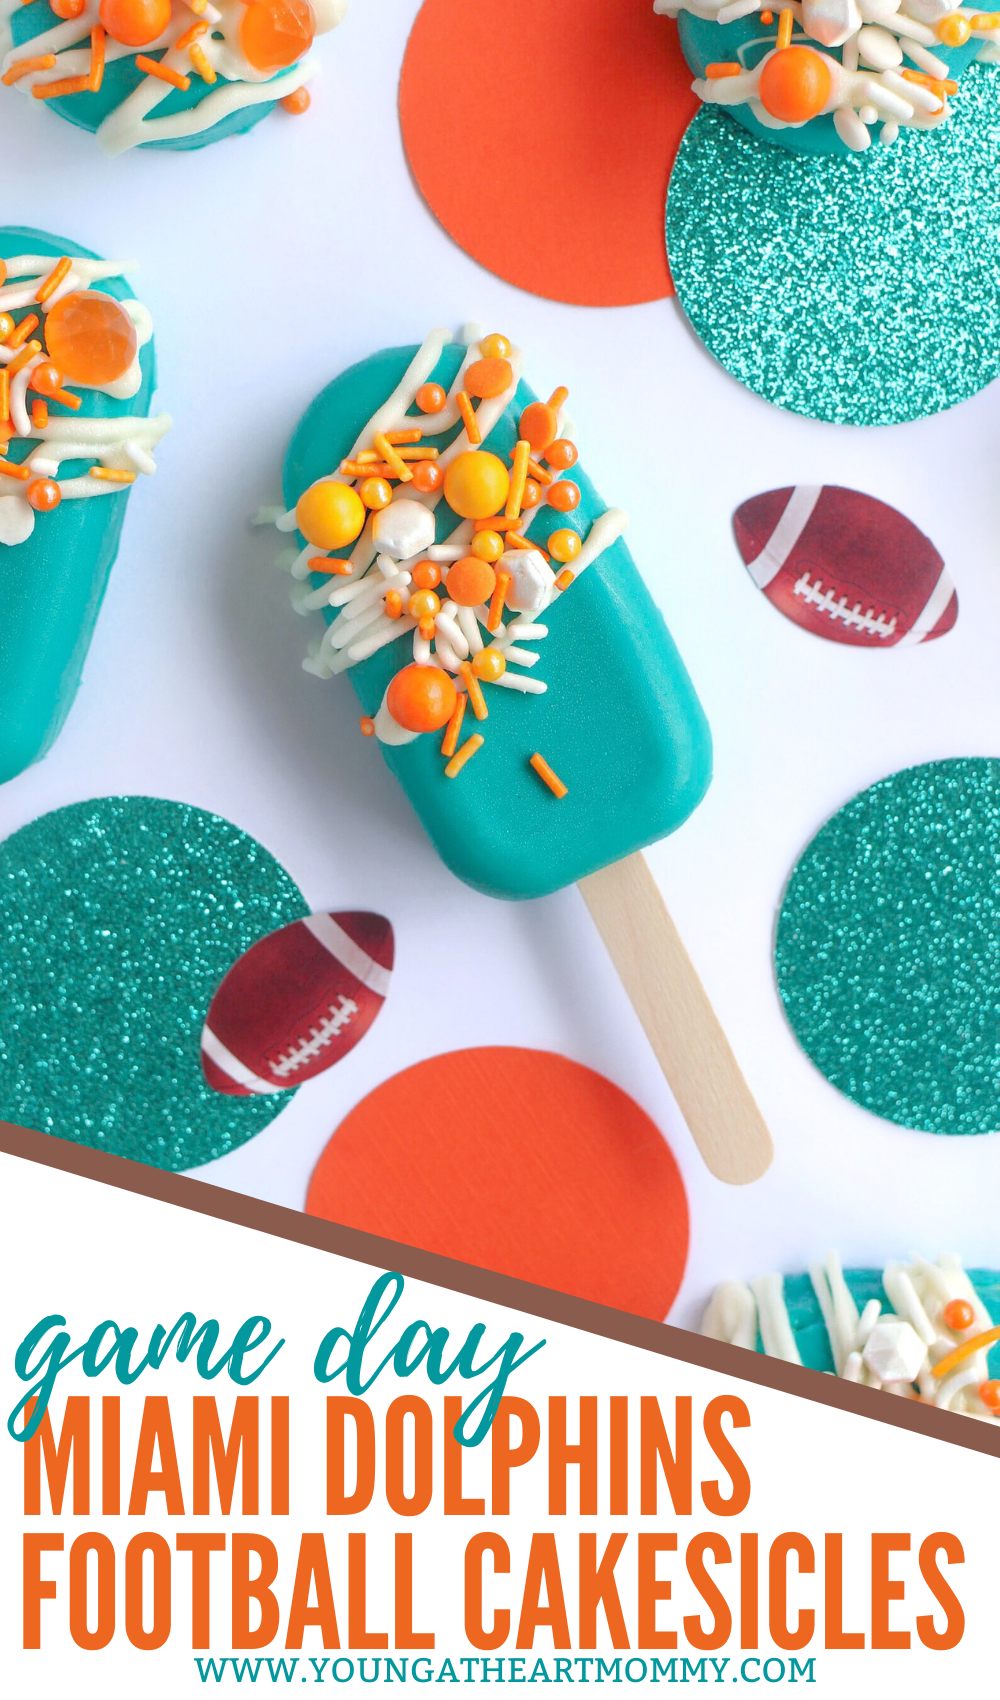 Miami-Dolphins-Football-Cakesicles-For-Game-Day-1